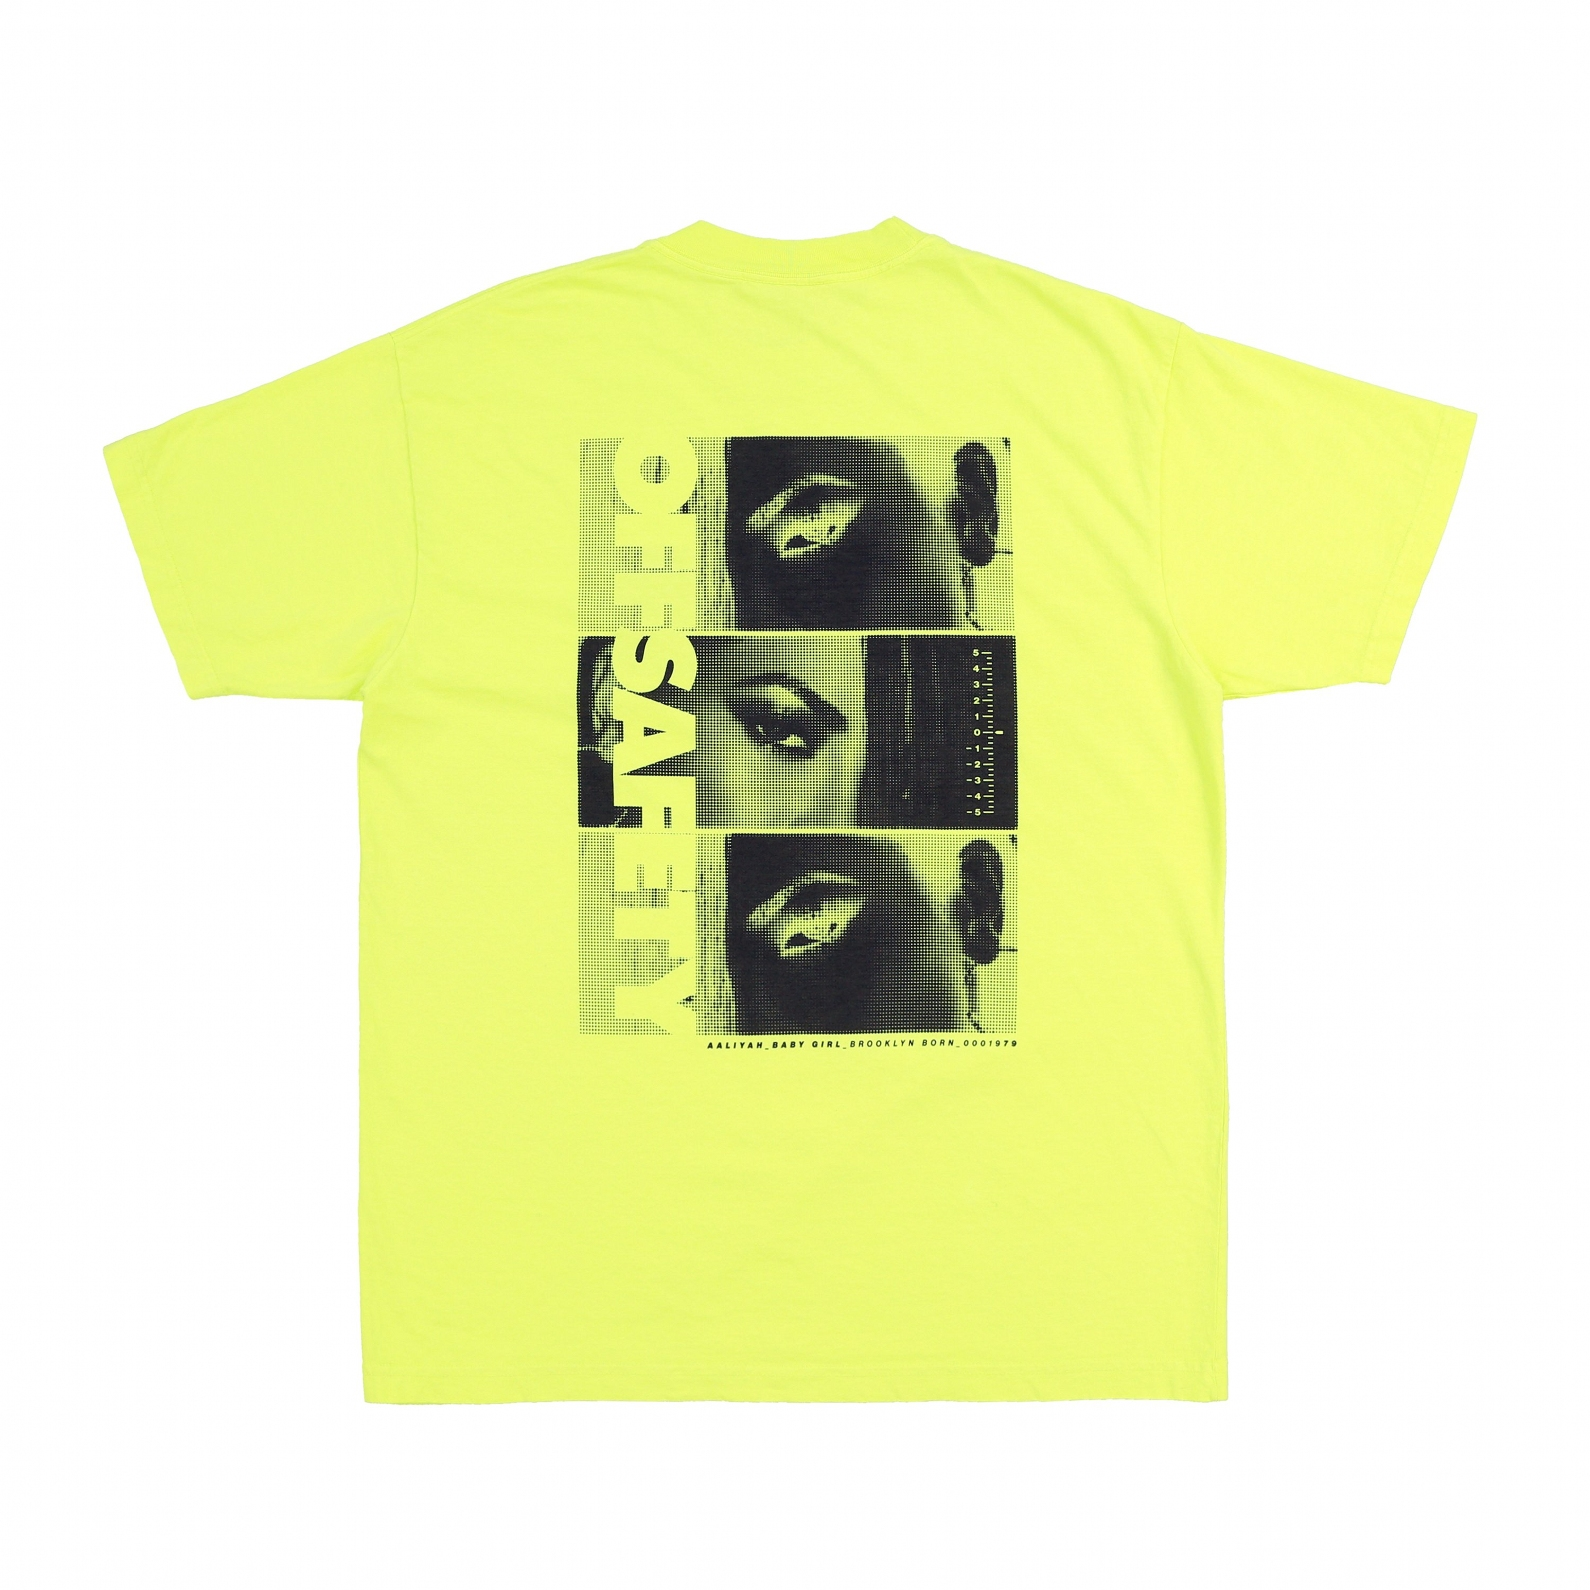 【OFF SAFETY/オフセーフティー】AALIYAH EYES TEE Tシャツ / SAFETY YELLOW